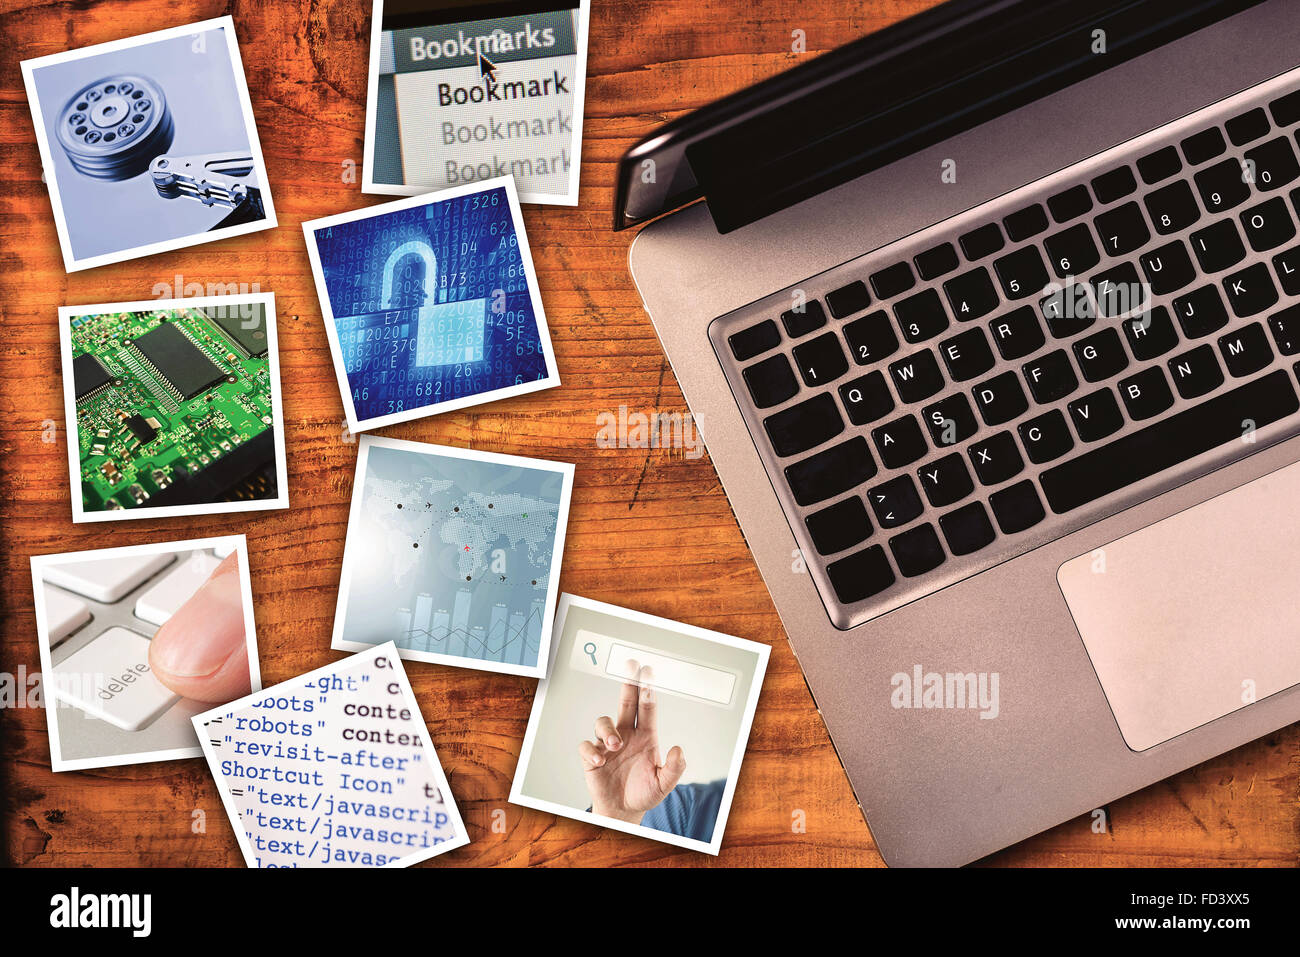 Modern computer information technology photo collage, stack of tech and internet themed pictures on wooden office - Stock Image